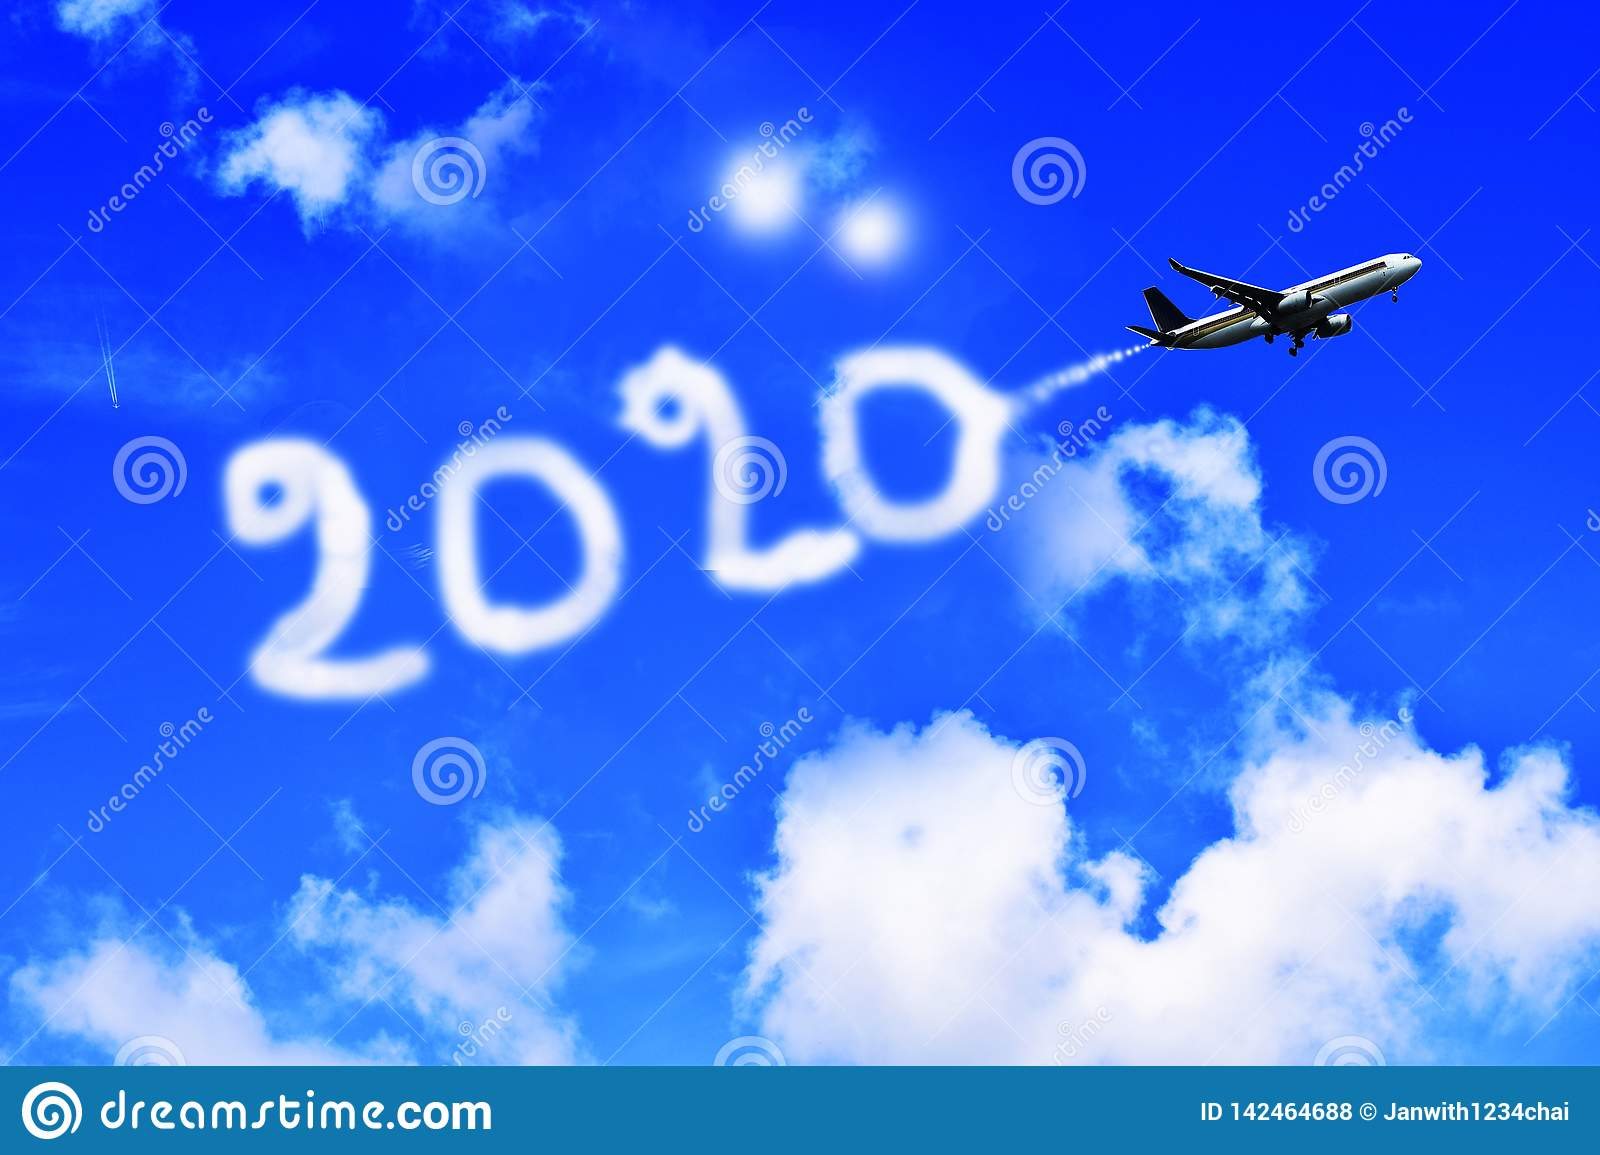 Wallpaper Happy New Year 2020 Stock Illustration